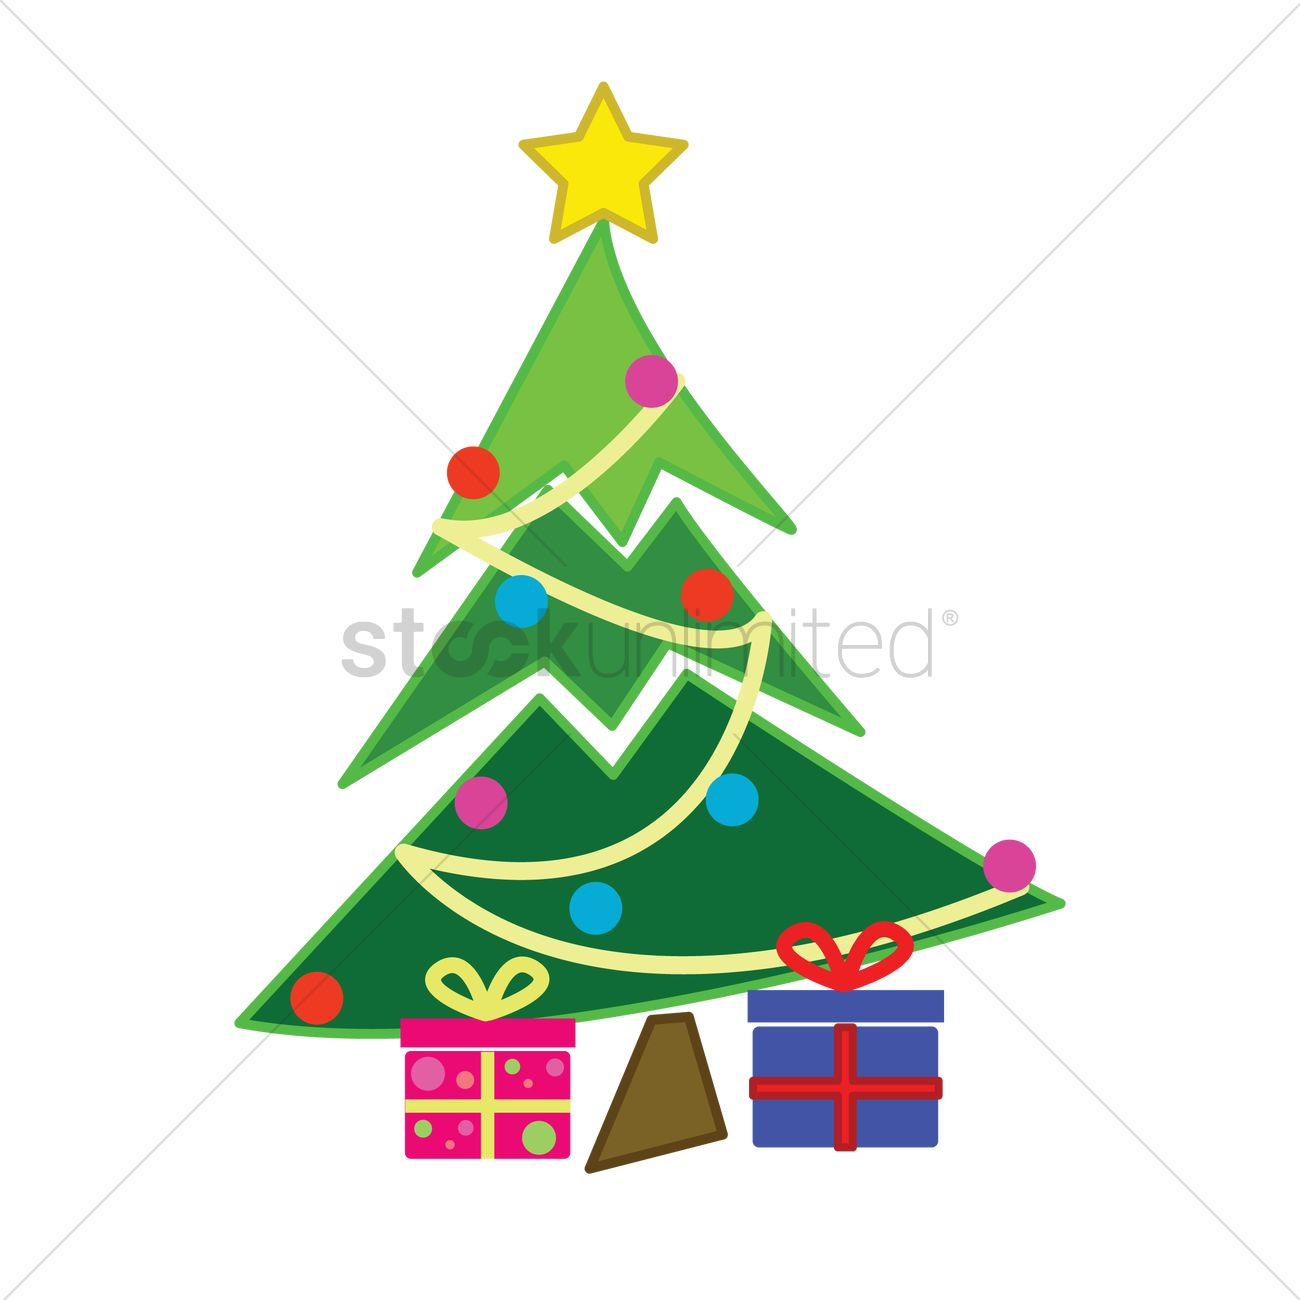 Decorated Christmas Tree On White Background Vector Image 1237013